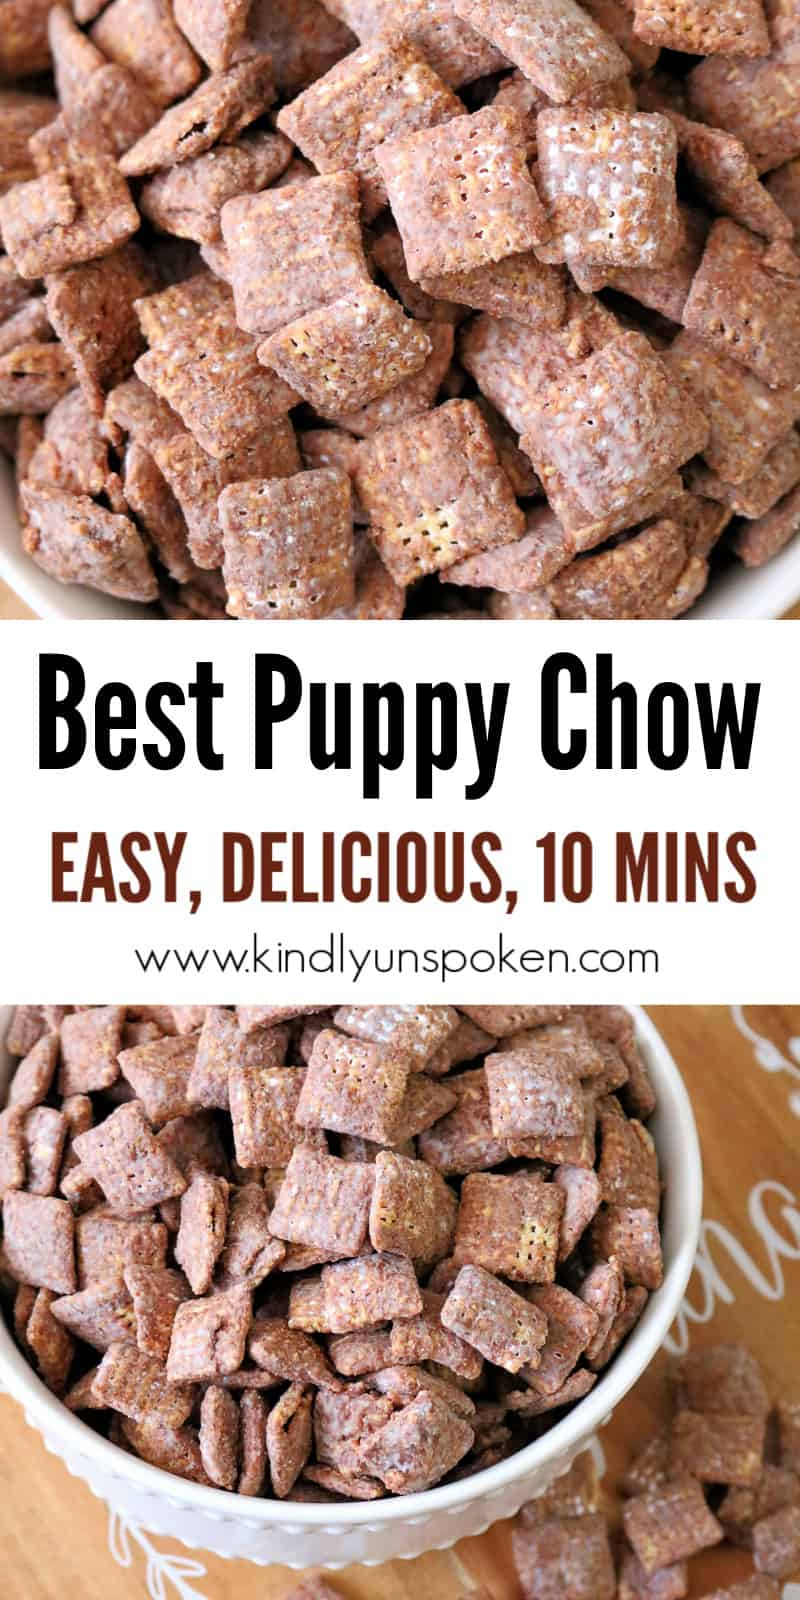 Try my Best Chex Muddy Buddies Recipe for the most delicious and easy puppy chow snack mix you'll ever eat! These easy muddy buddies are a yummy no-bake, gluten-free treat and my puppy chow is made healthier with less sugar. #muddybuddies #puppychow #chexmix #snackmix #nobakedessert